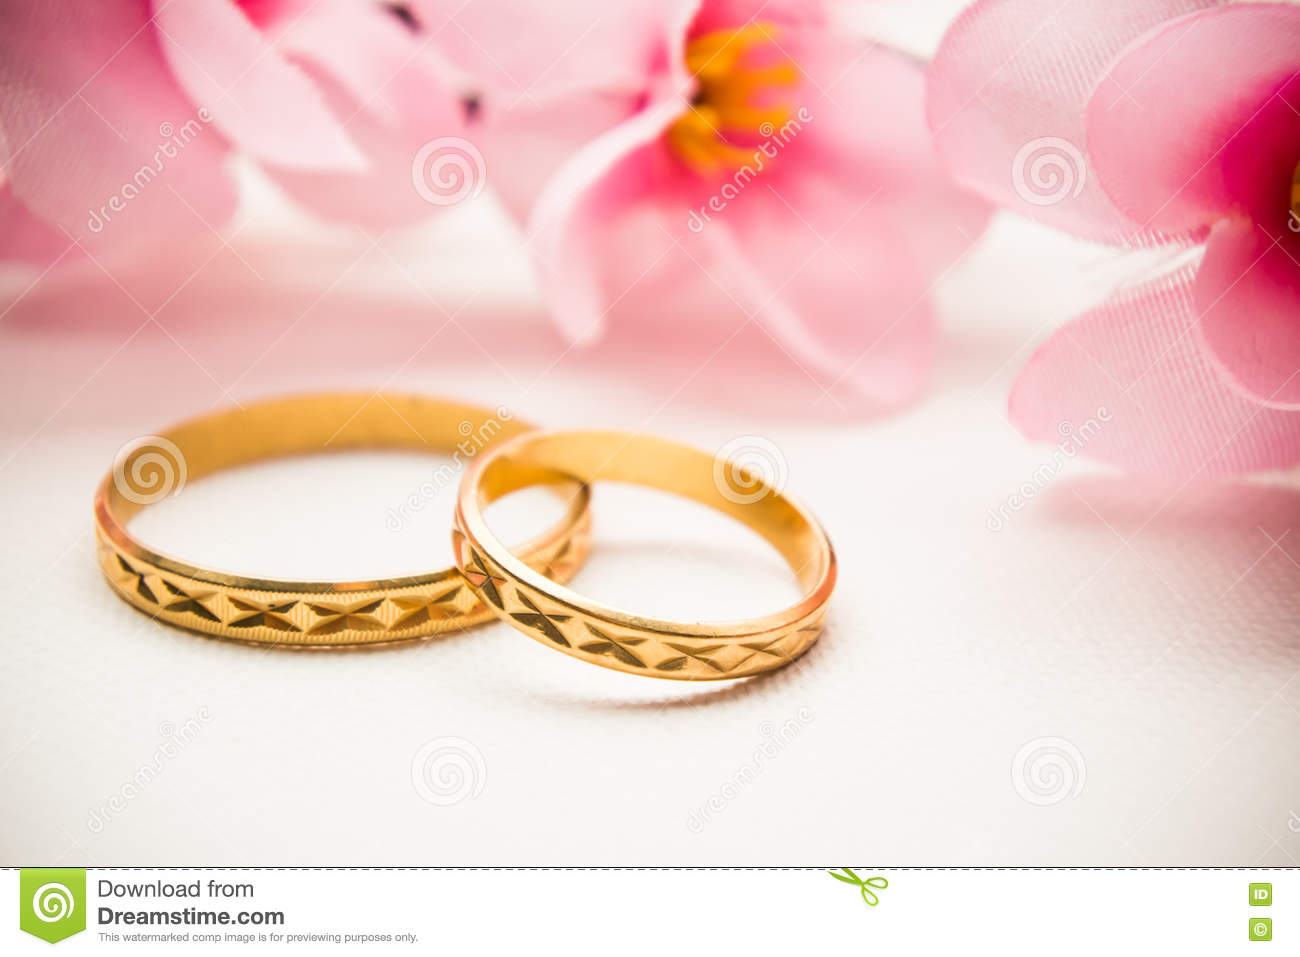 Wedding Rings And Pink Flowers Background Stock Image - Image of ...